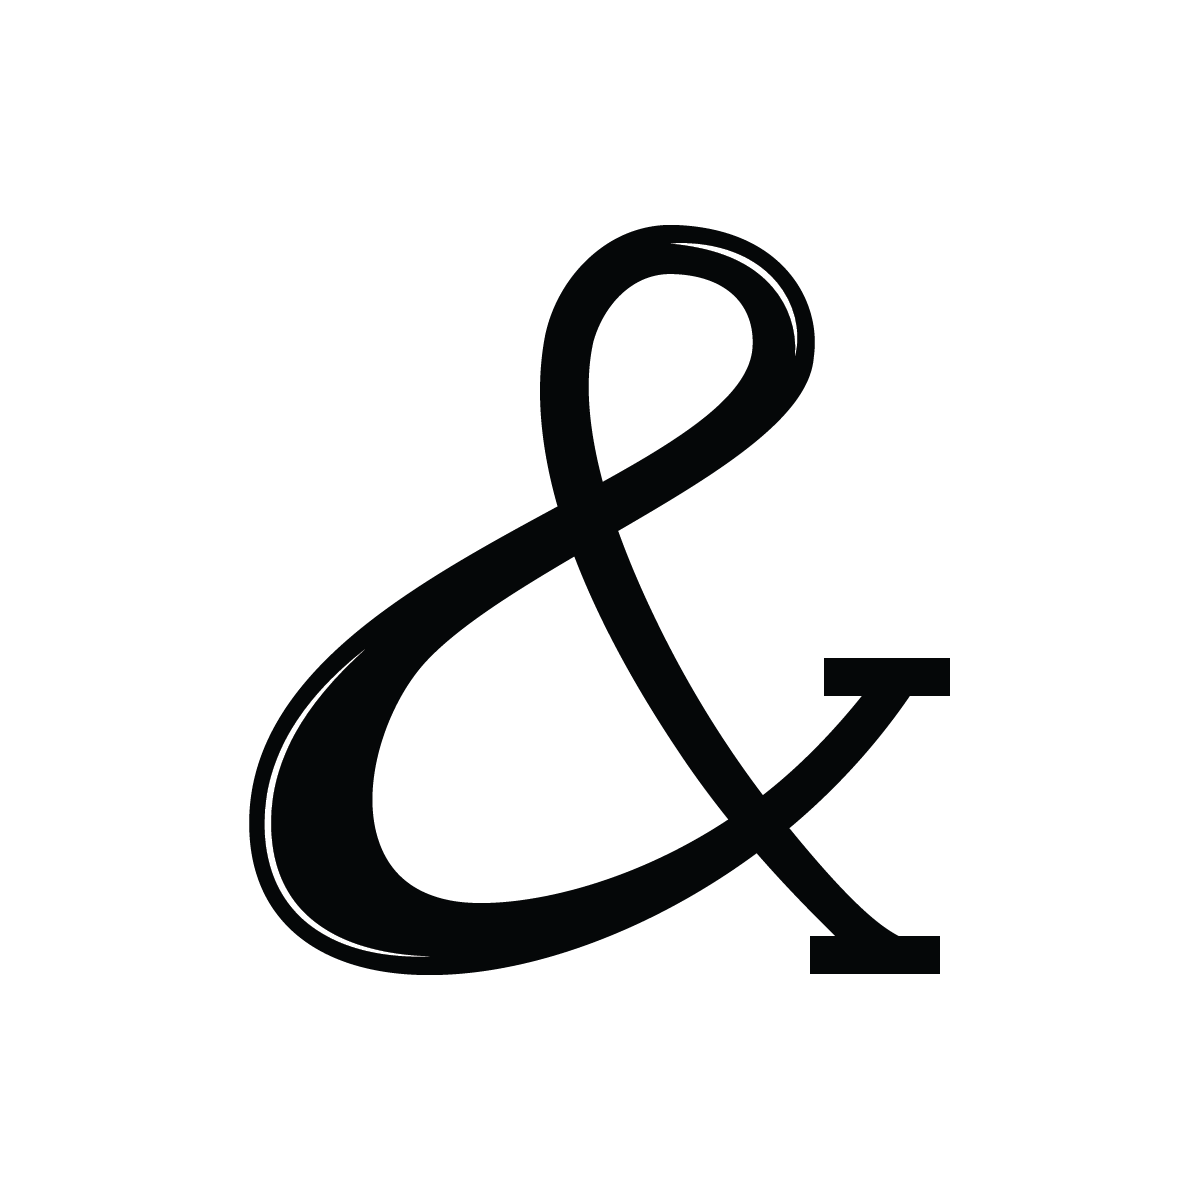 Ampersand_Grid_02-03